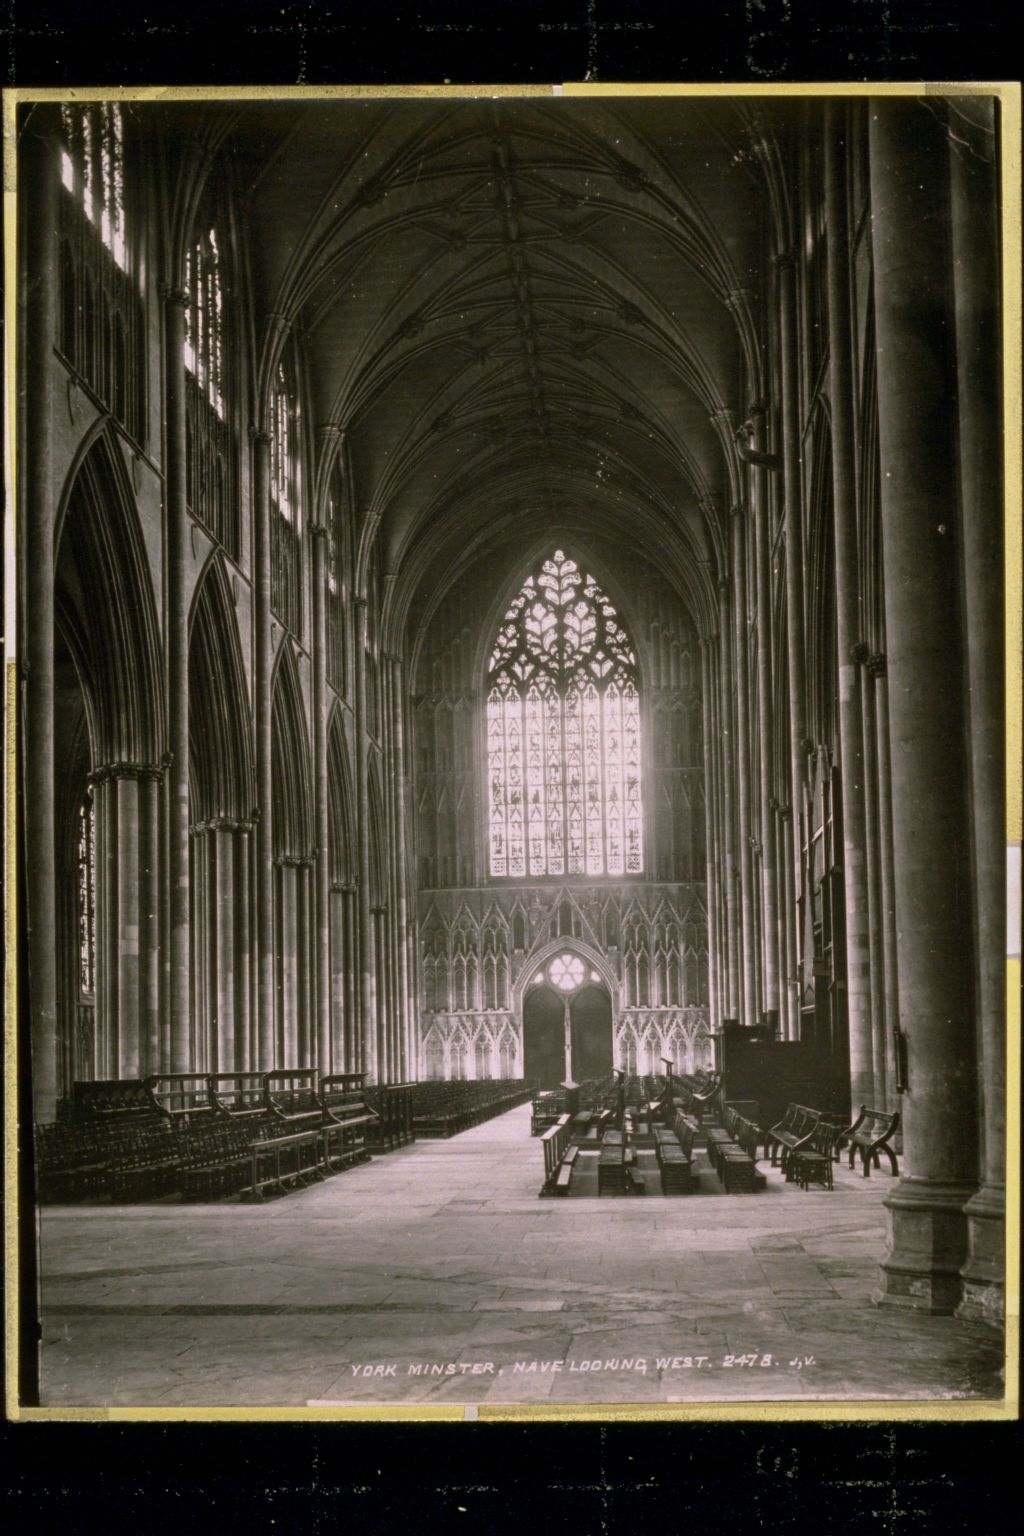 York Minster, the Nave